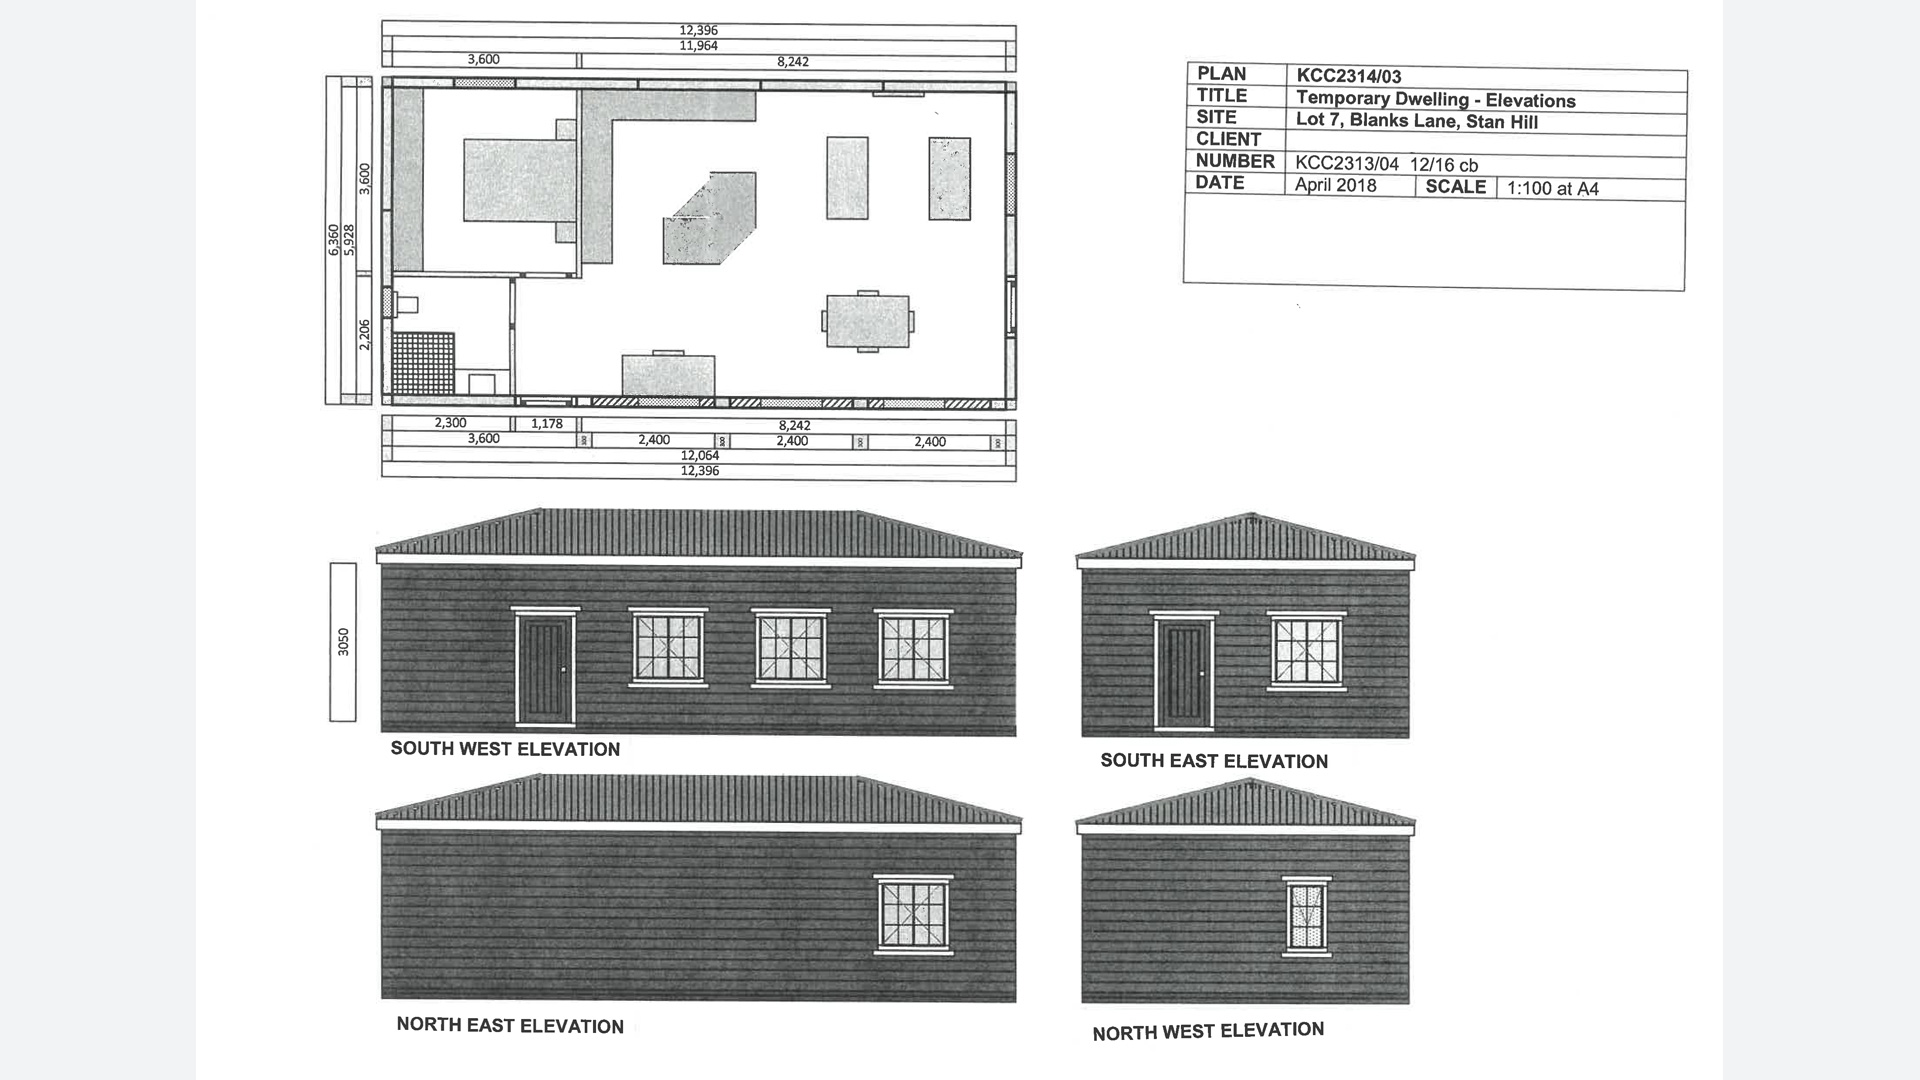 Land with planning permission for a temporary dwelling in Charlwood